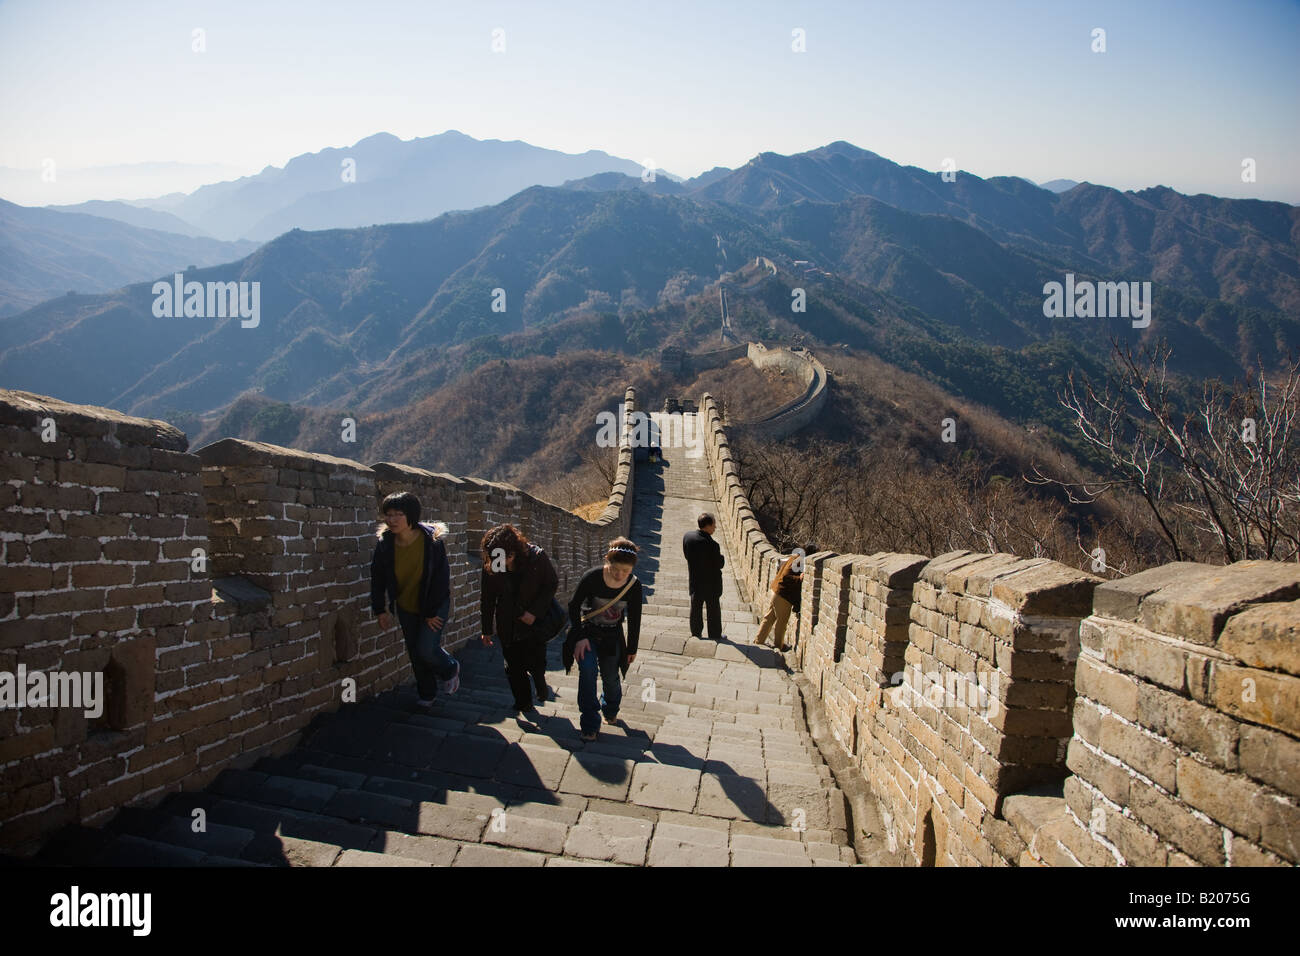 Tourists walk the ancient Great Wall of China at Mutianyu north of Beijing formerly Peking China - Stock Image